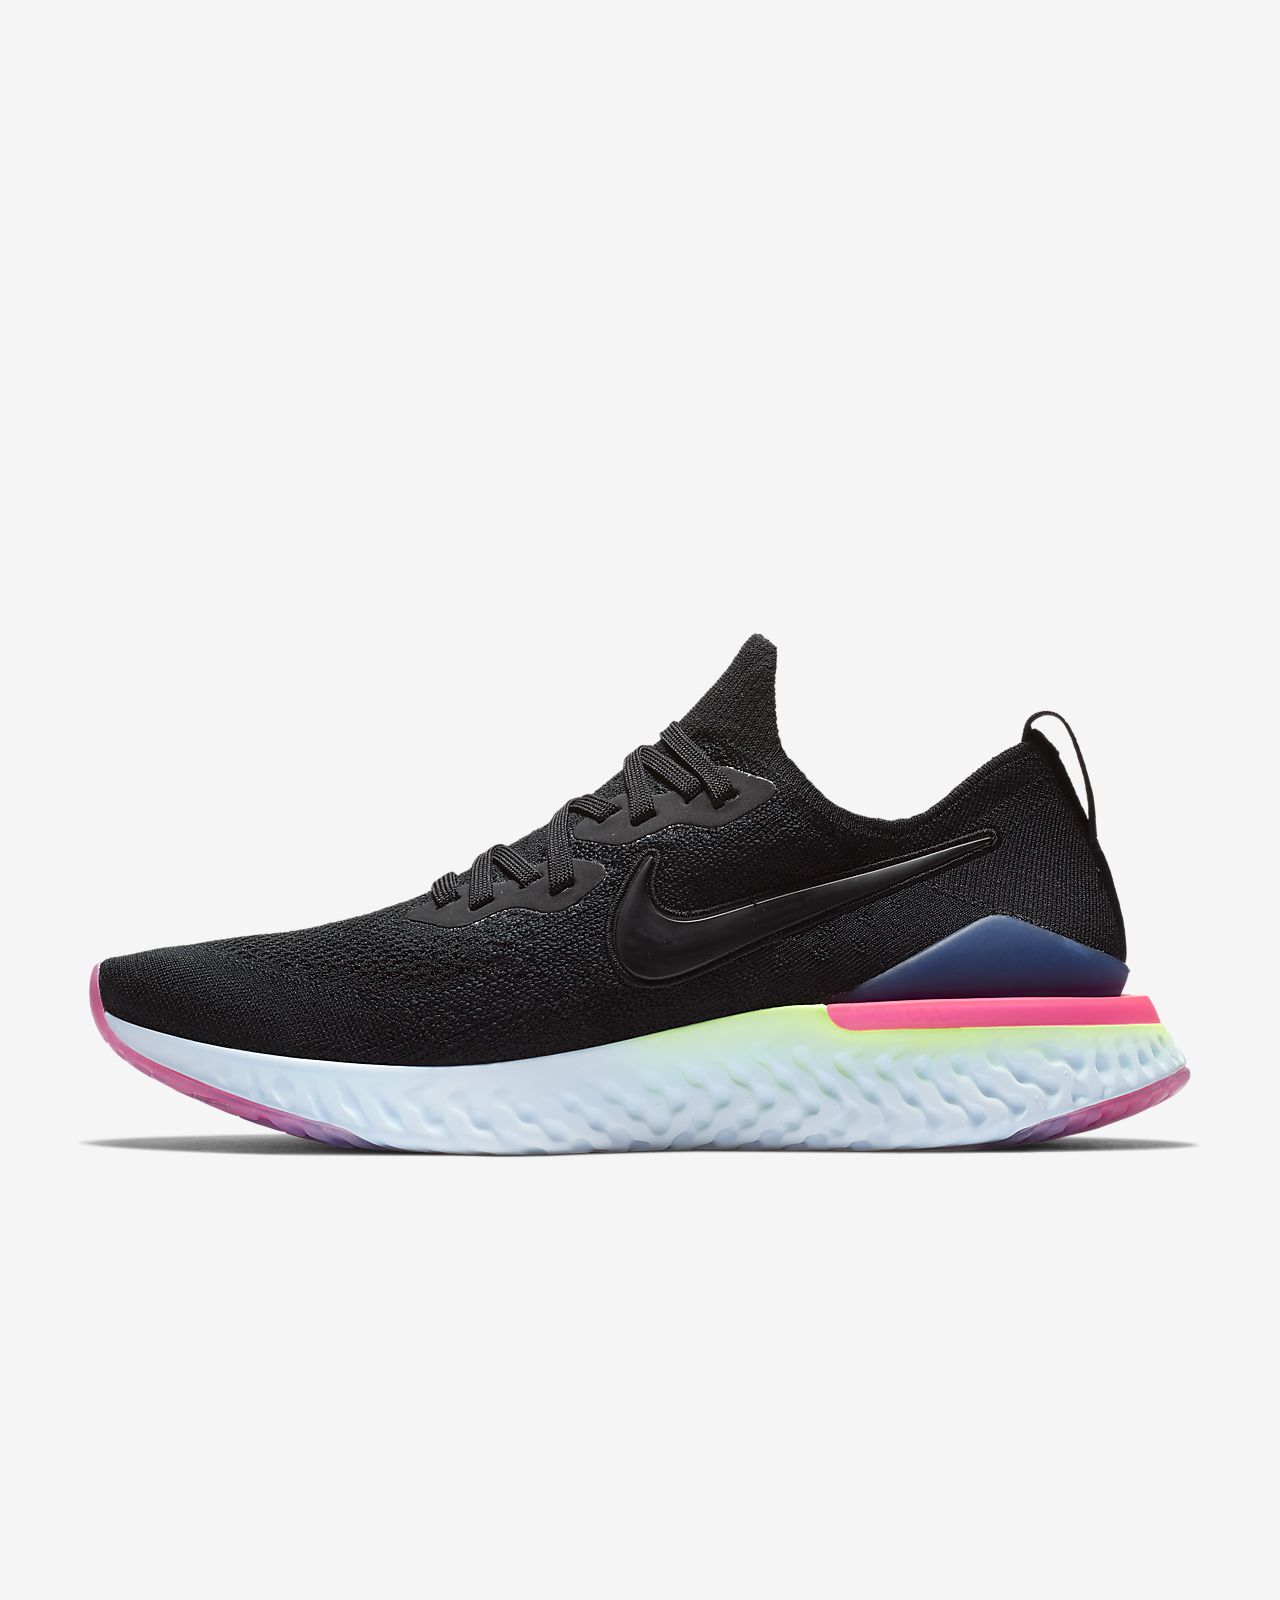 6b6a0786f73d Nike Epic React Flyknit 2 Men s Running Shoe. Nike.com ID